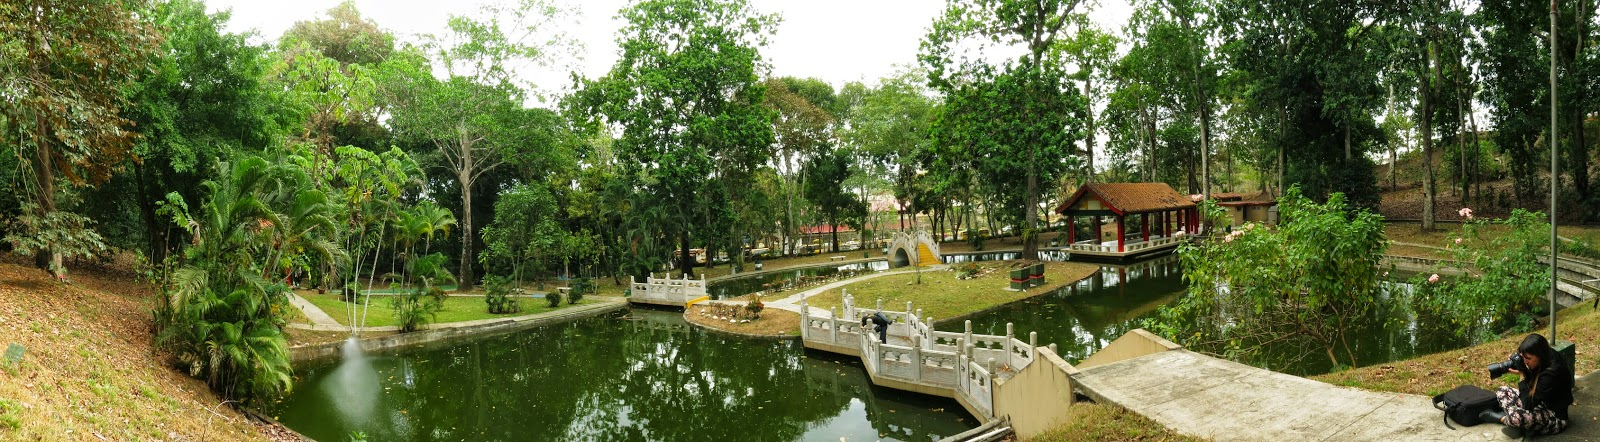 Image result for PARQUE CHINO panama